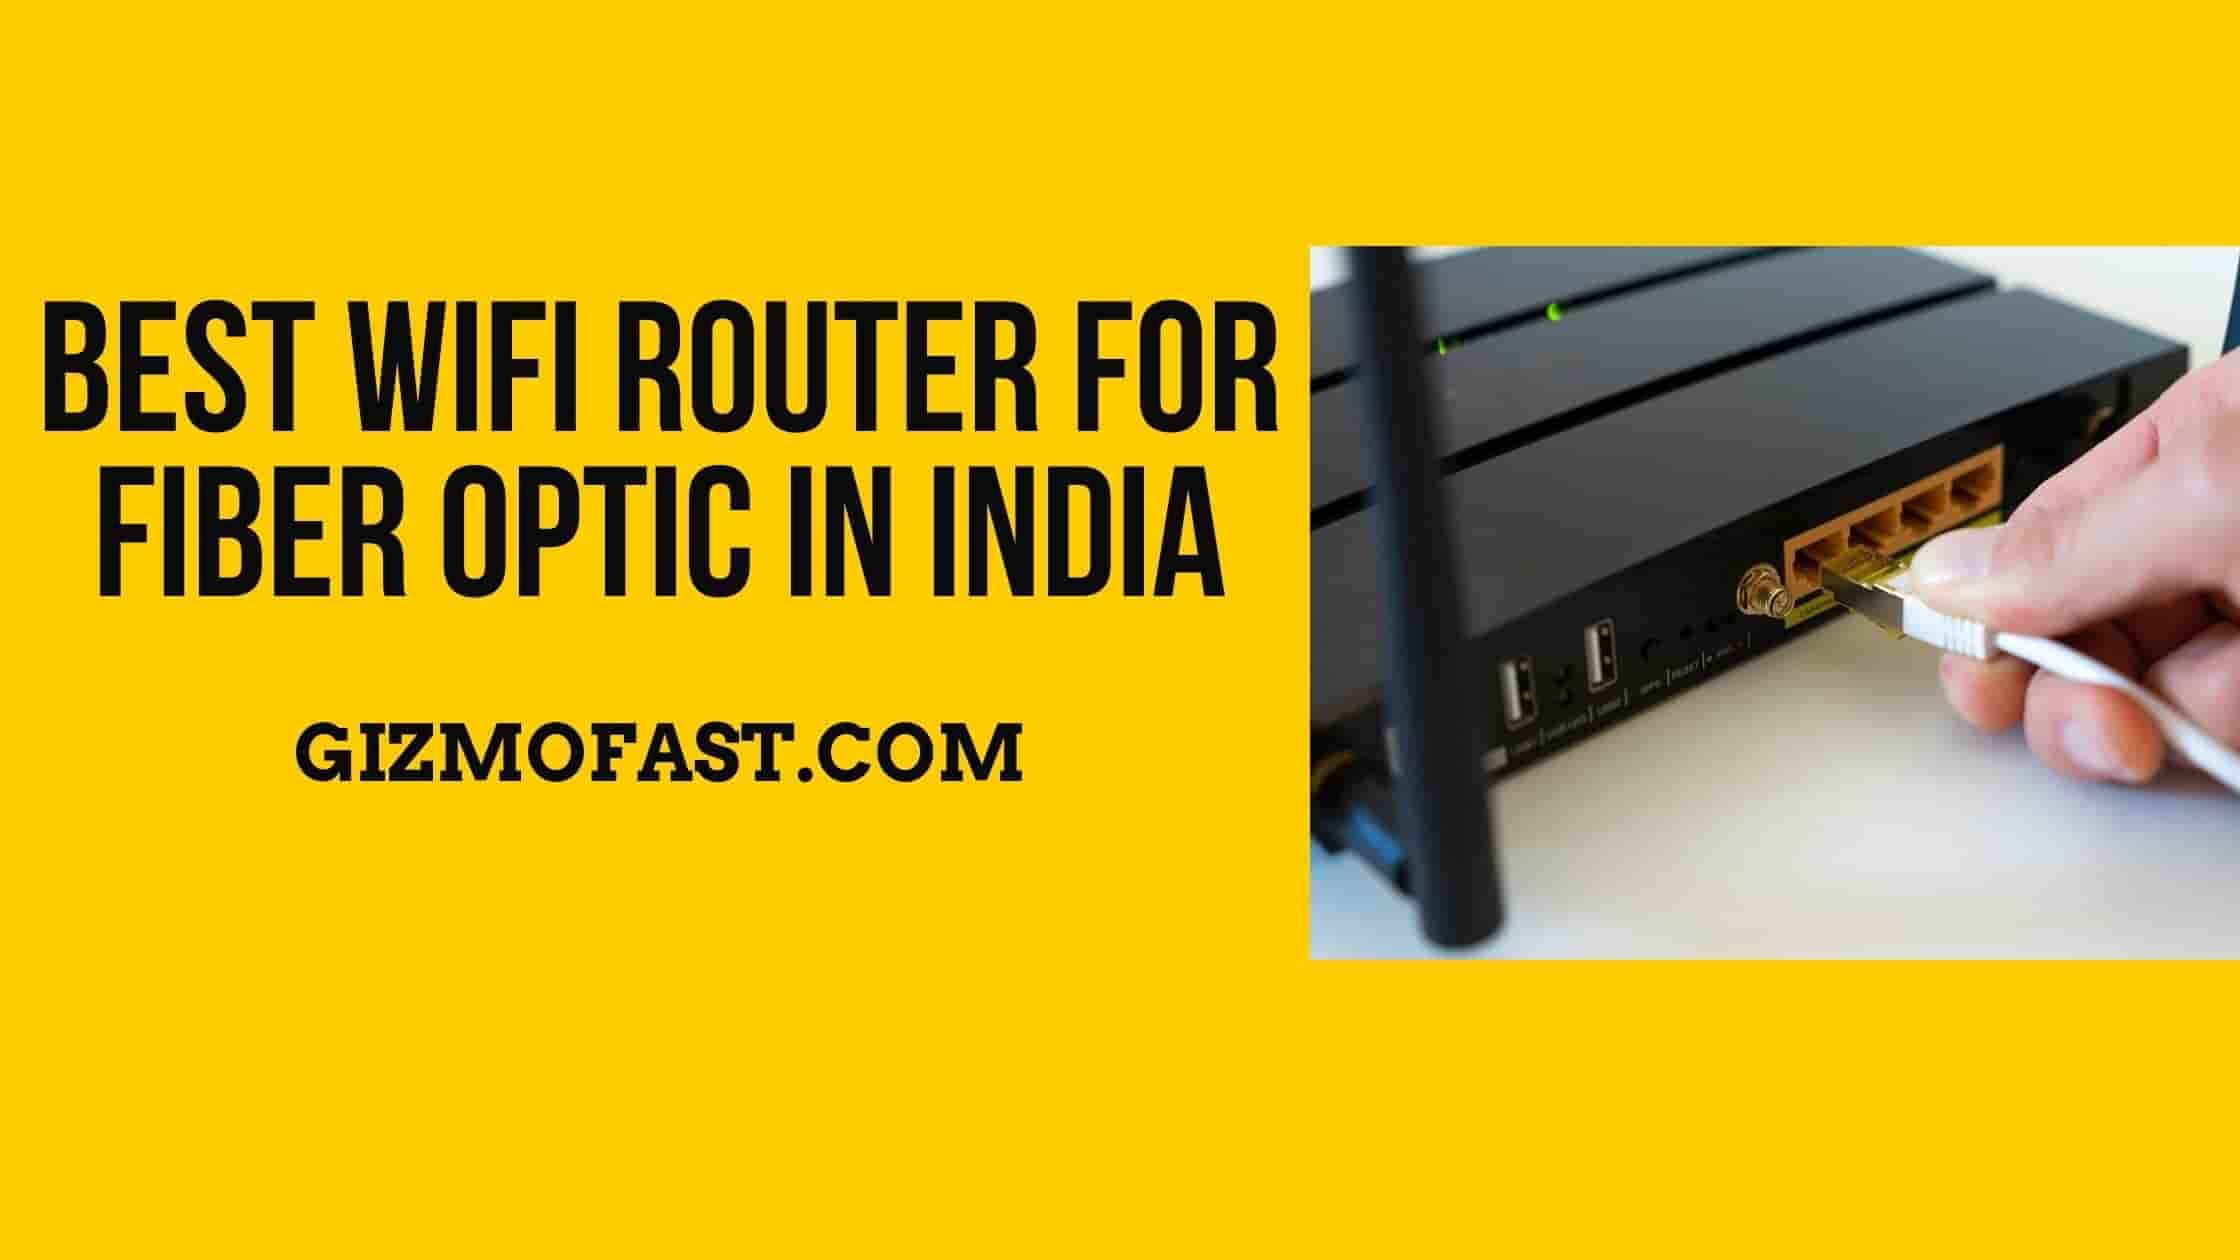 Best WiFi Router For Fiber Optic In India